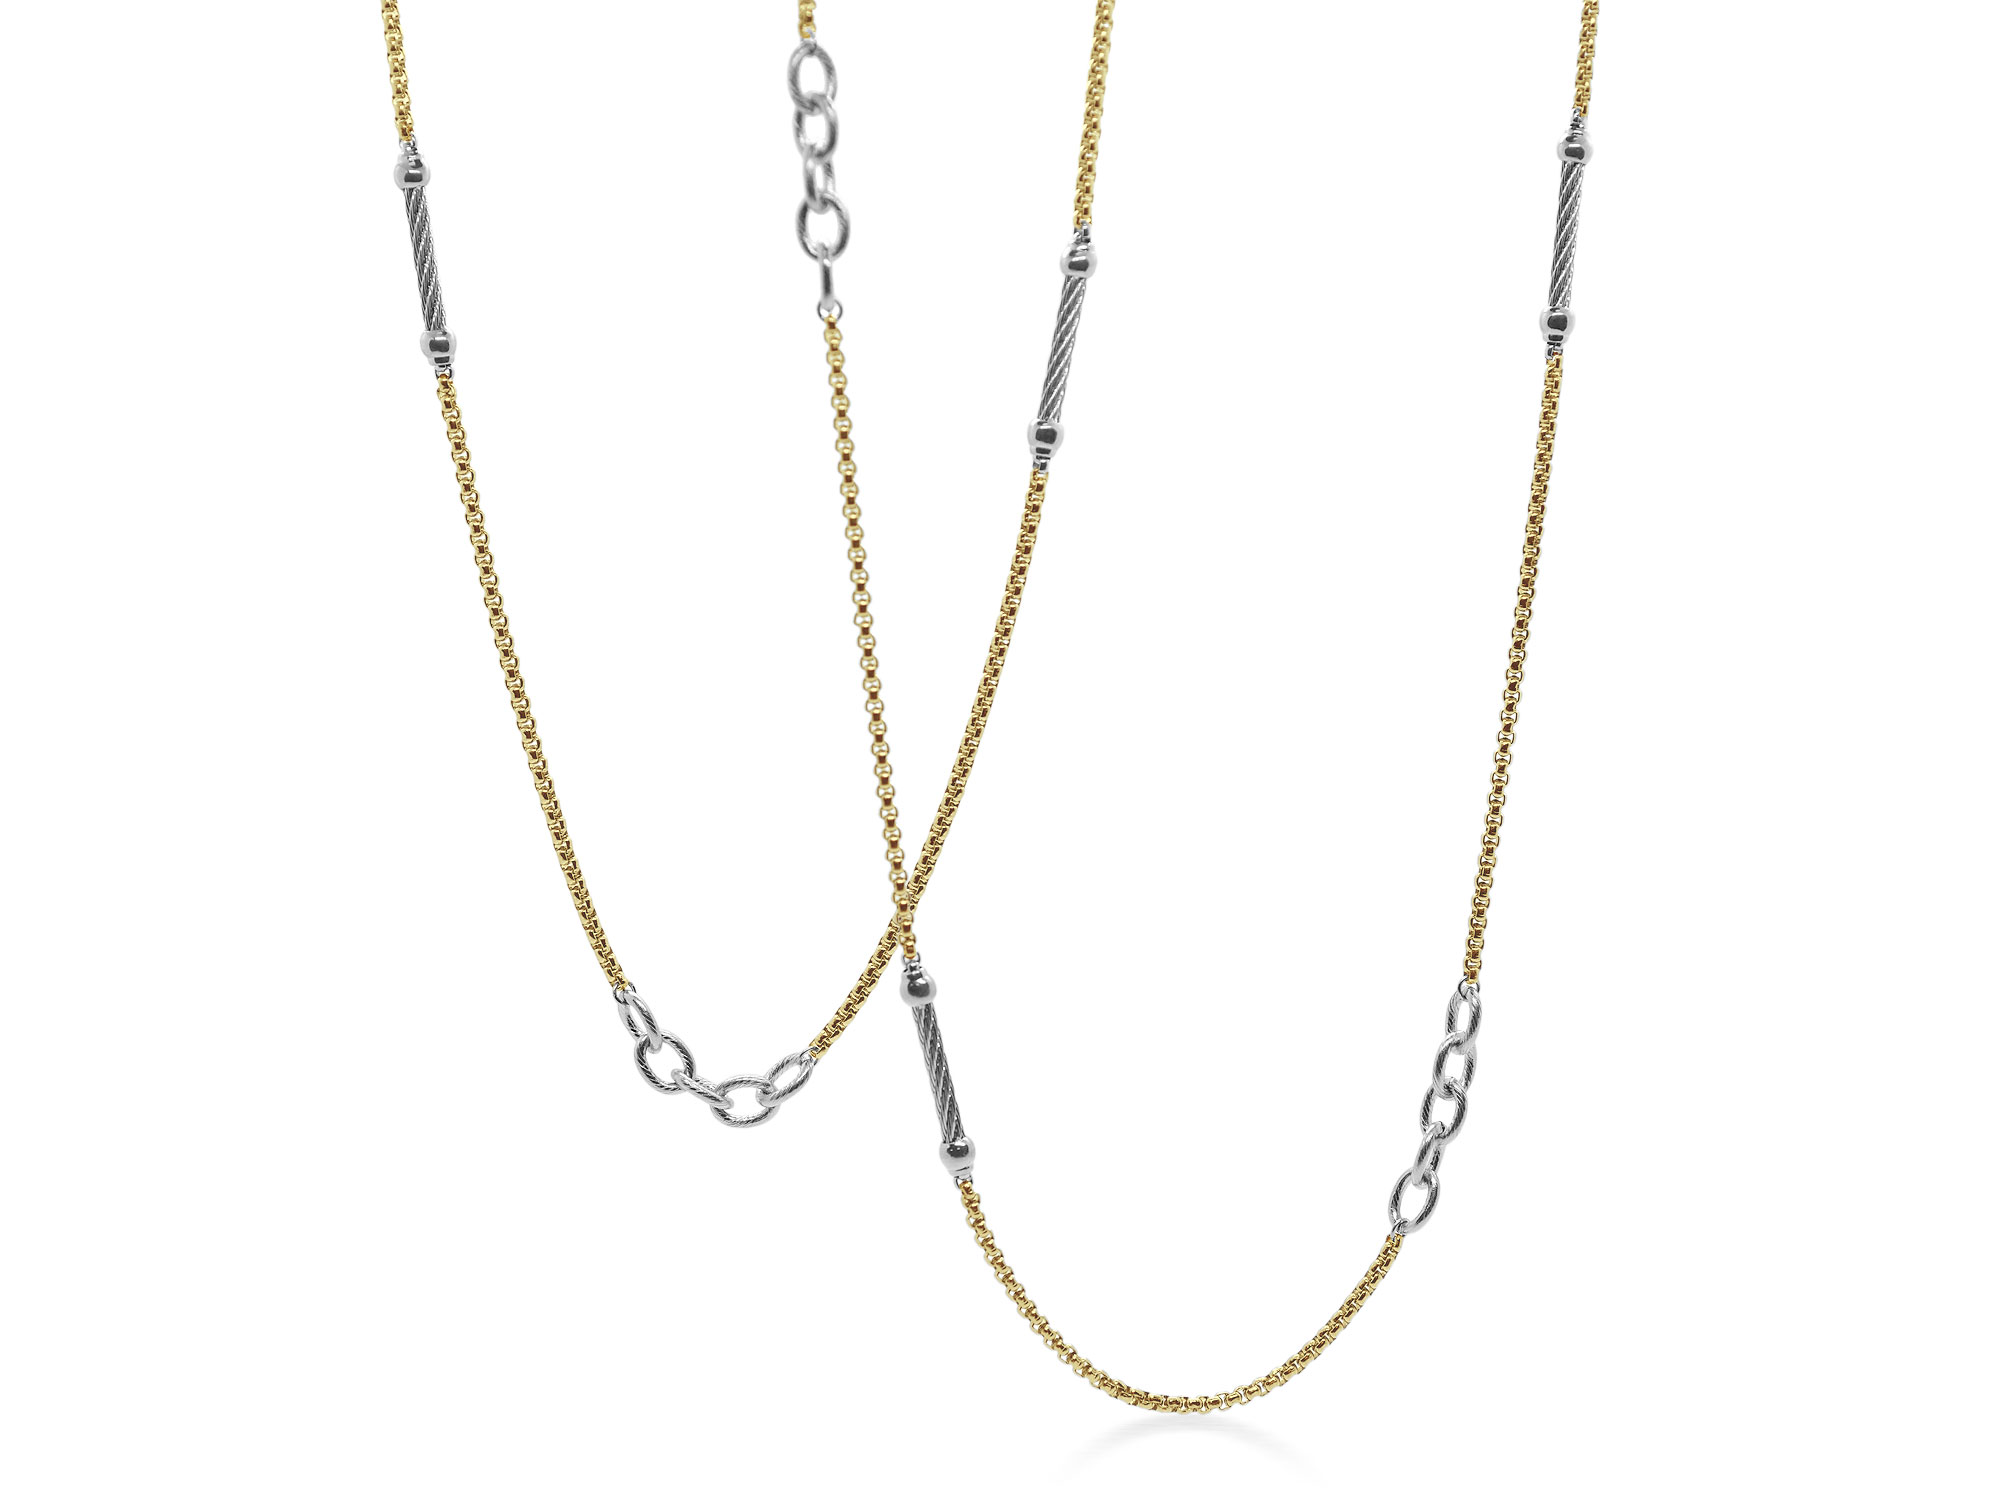 Grey and Yellow stainless steel chain necklace, necklace length 36″. Imported. SKU: 08-43-0064-00